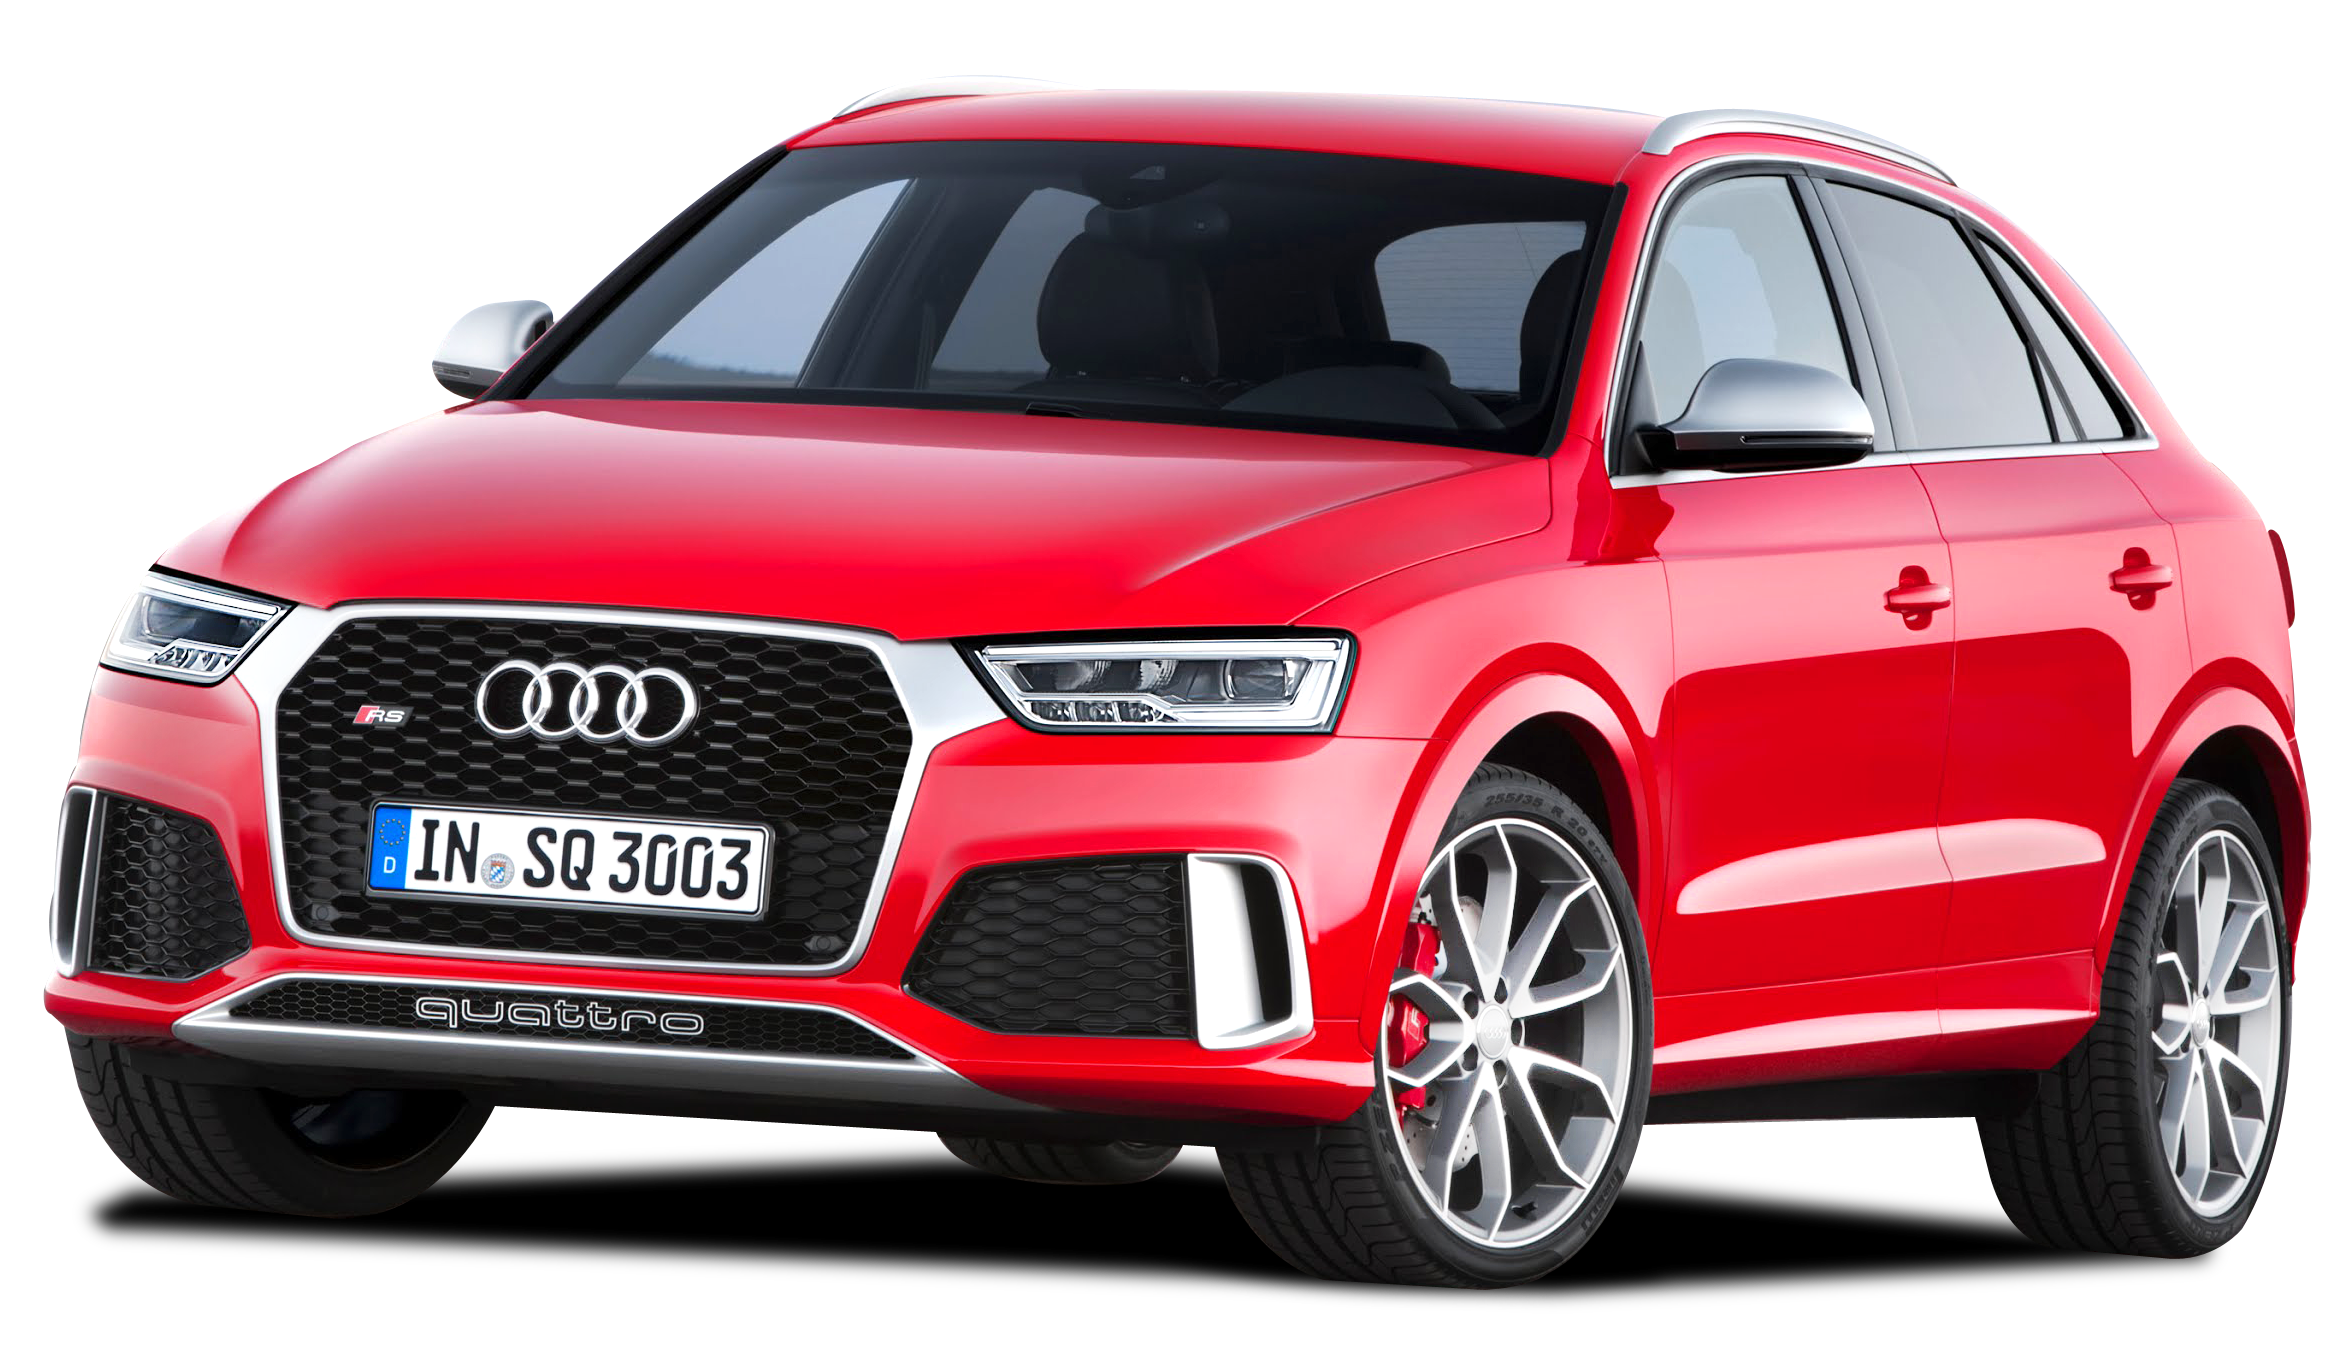 Audi RS Q3 PNG image Red Download